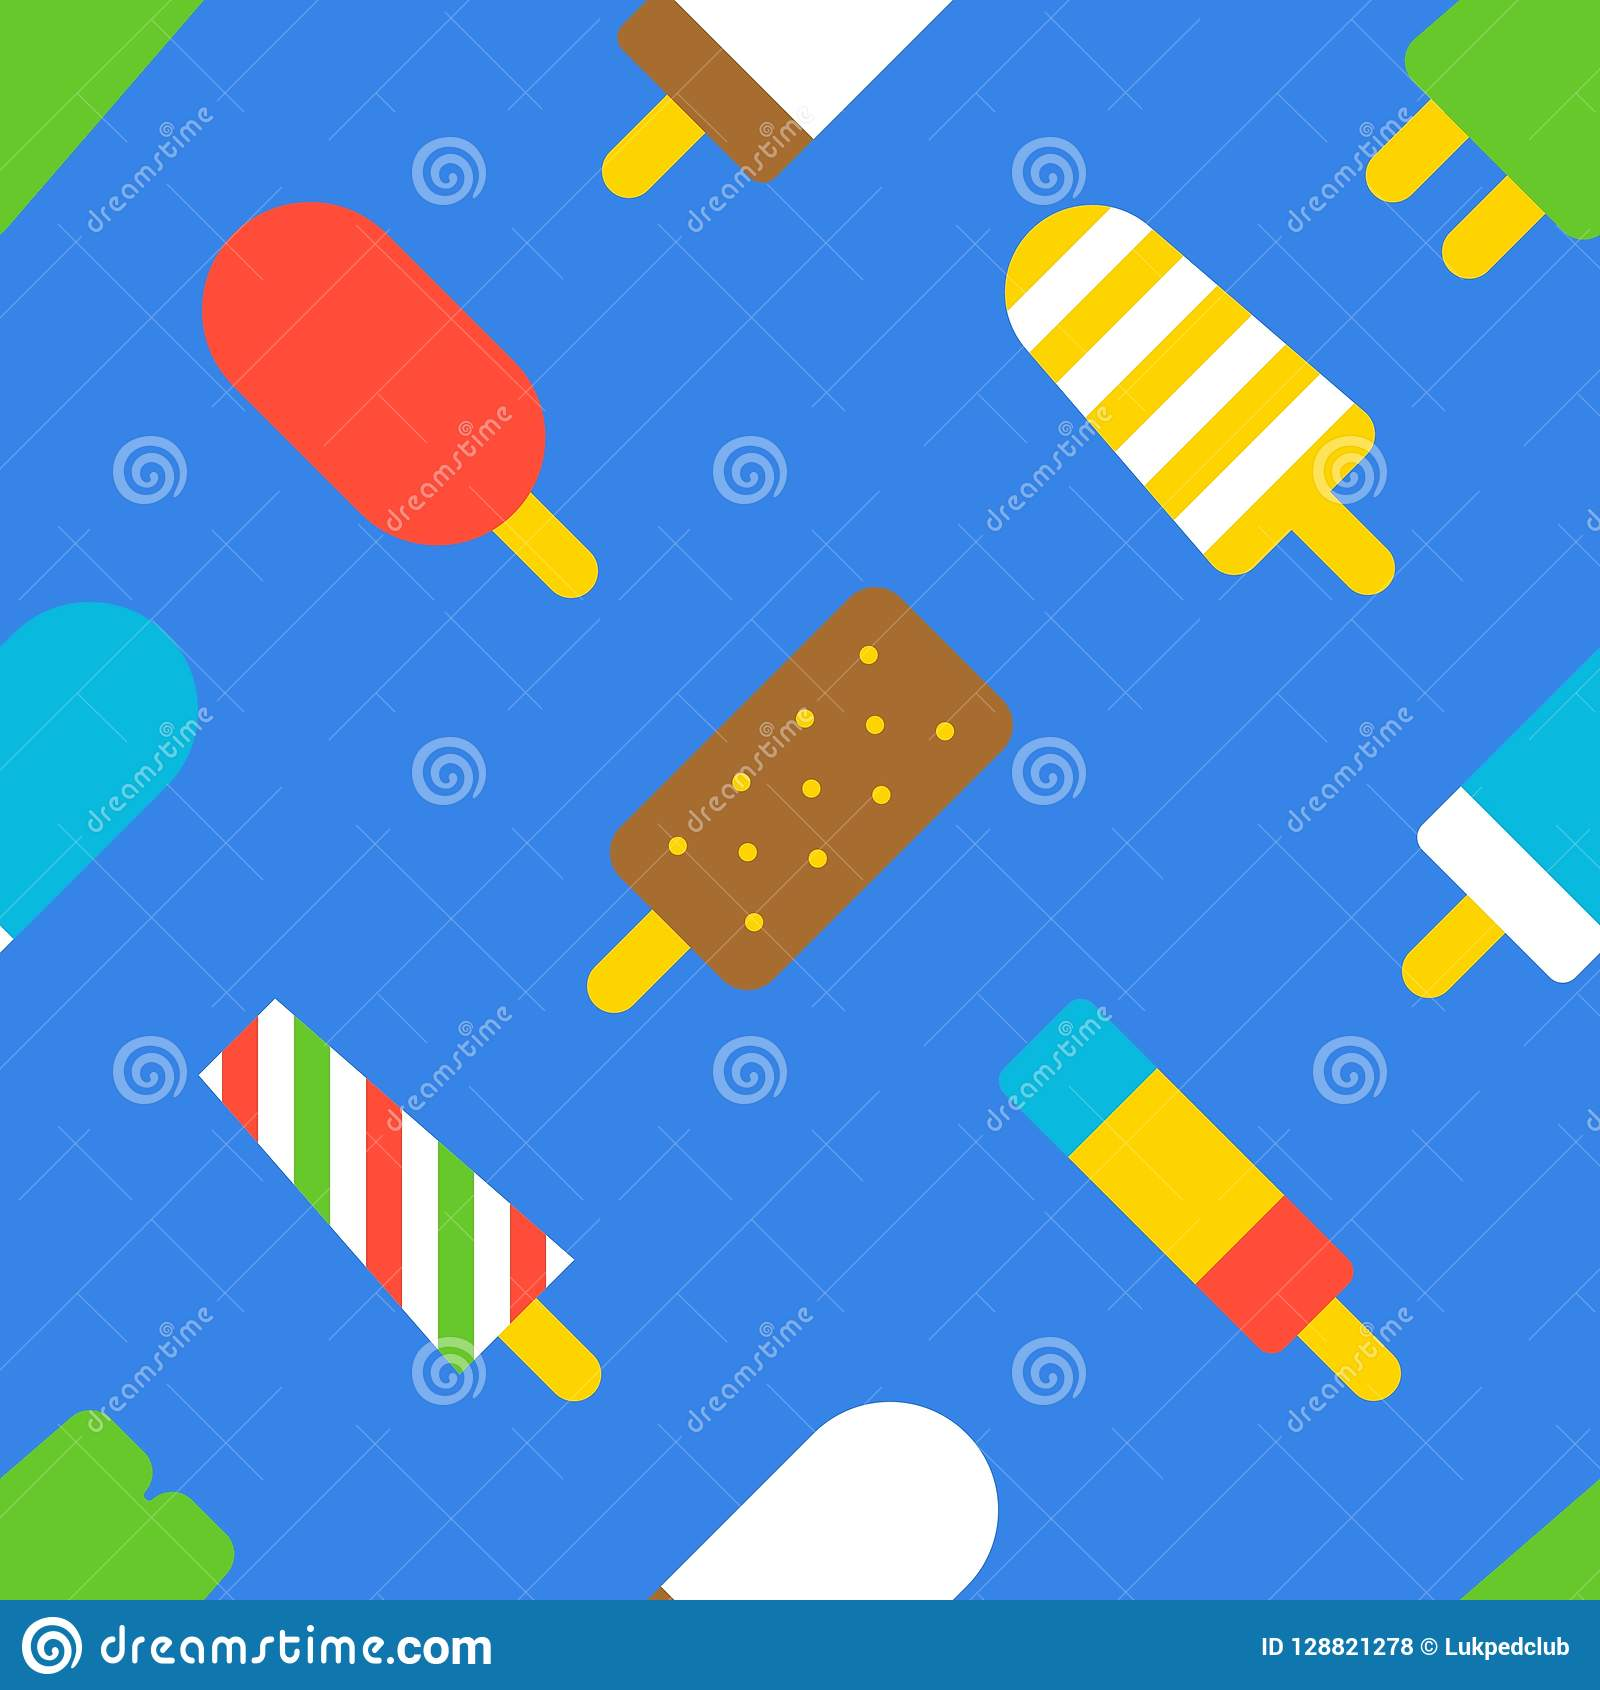 Popsicle Ice Cream Seamless Pattern, Flat Design Summer Theme For